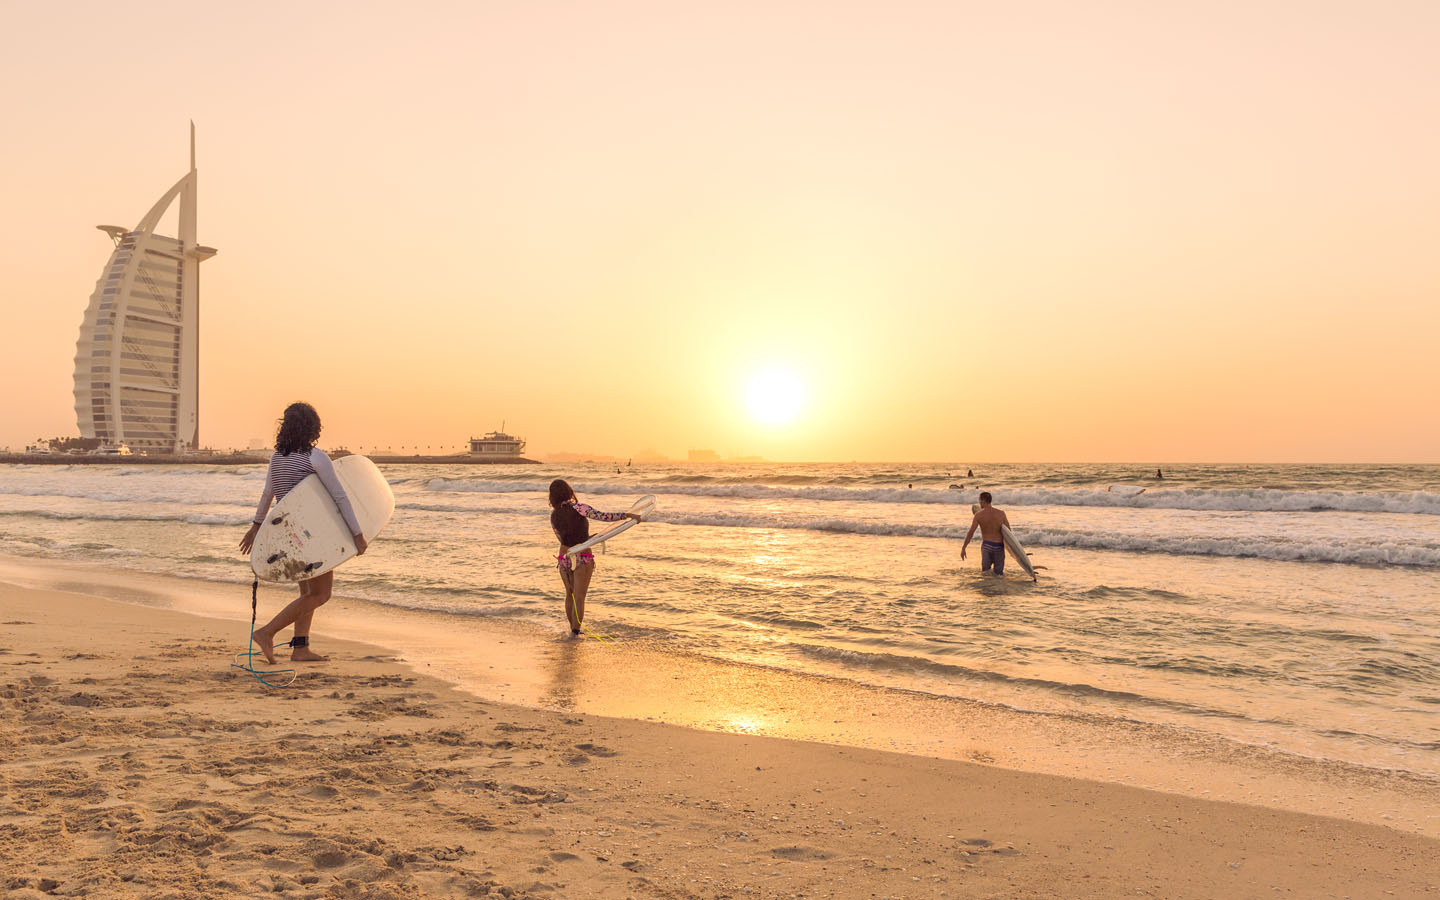 Surfers at Sunset Beach to catch a wave